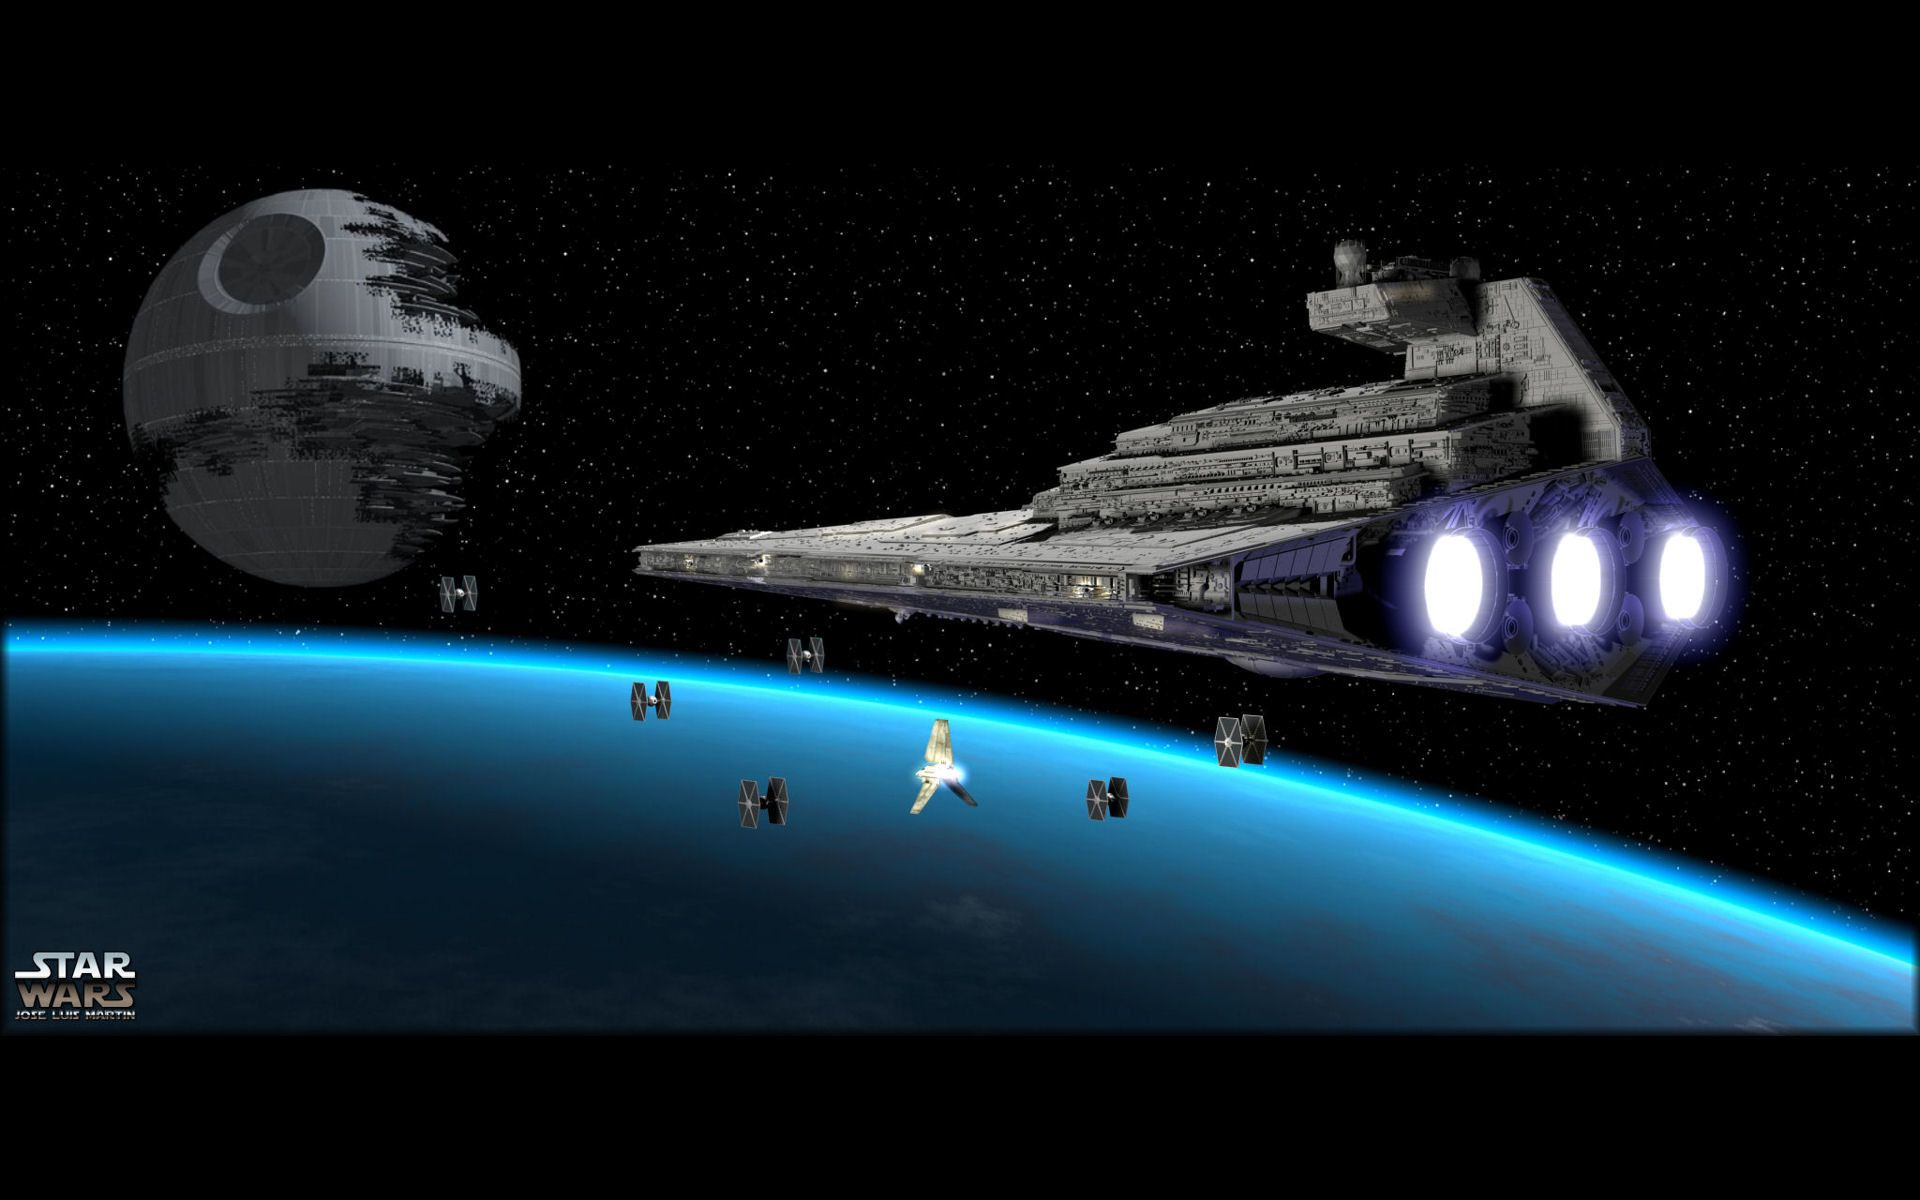 Star Wars Space Wallpaper 1920x1200 Pictures Wallpapers O